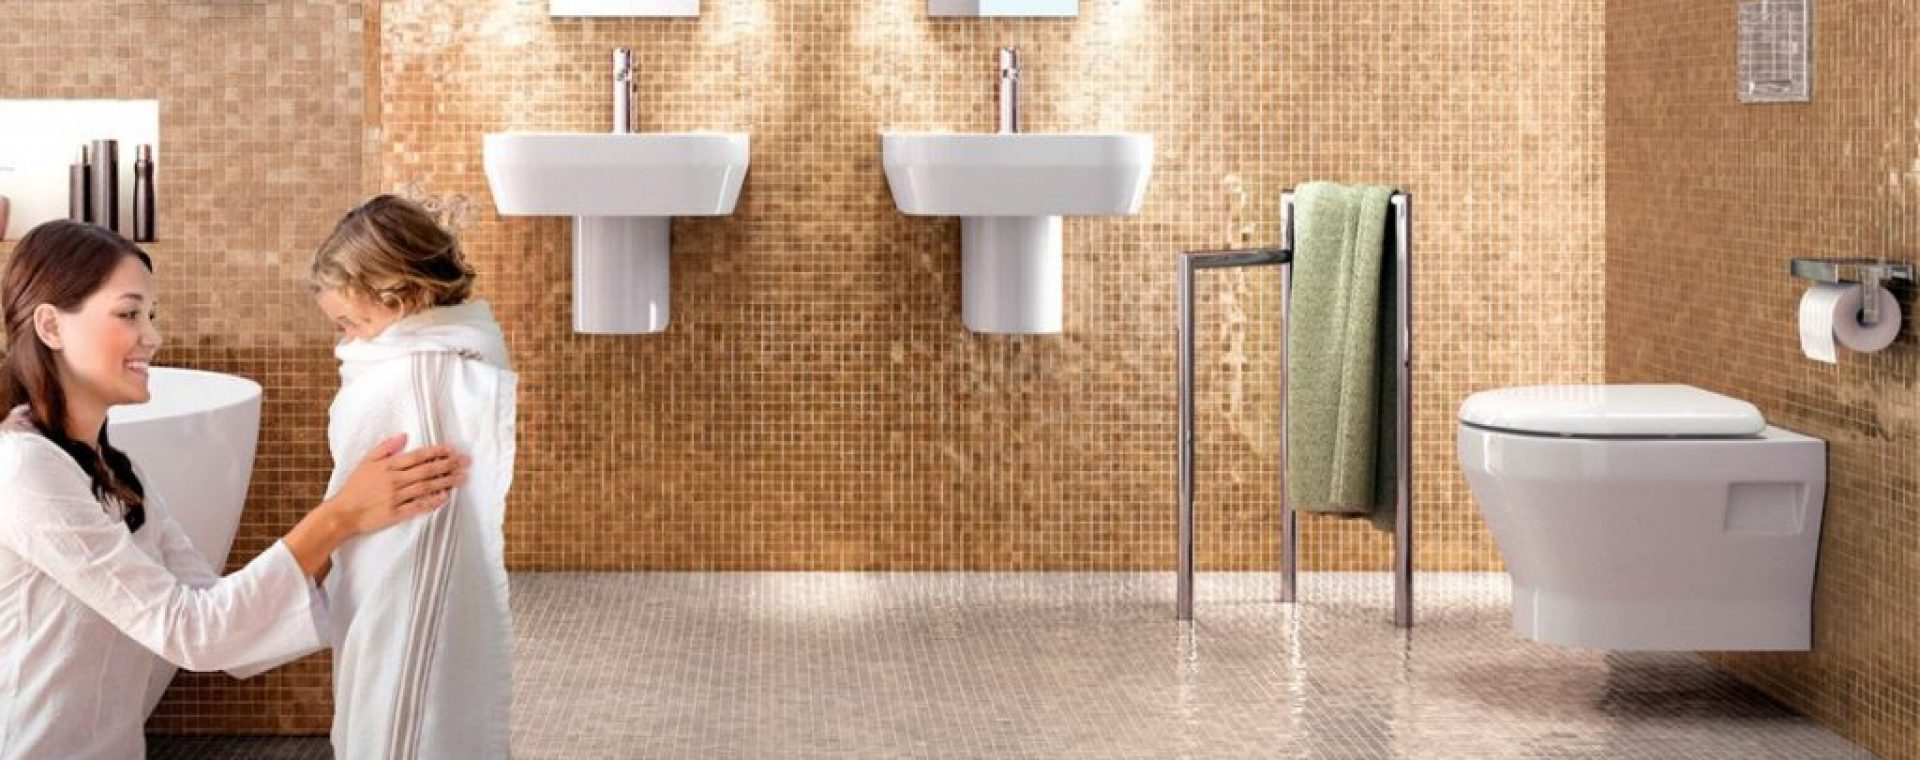 Make your dreams come true with a bathroom from Greenfield Interiors